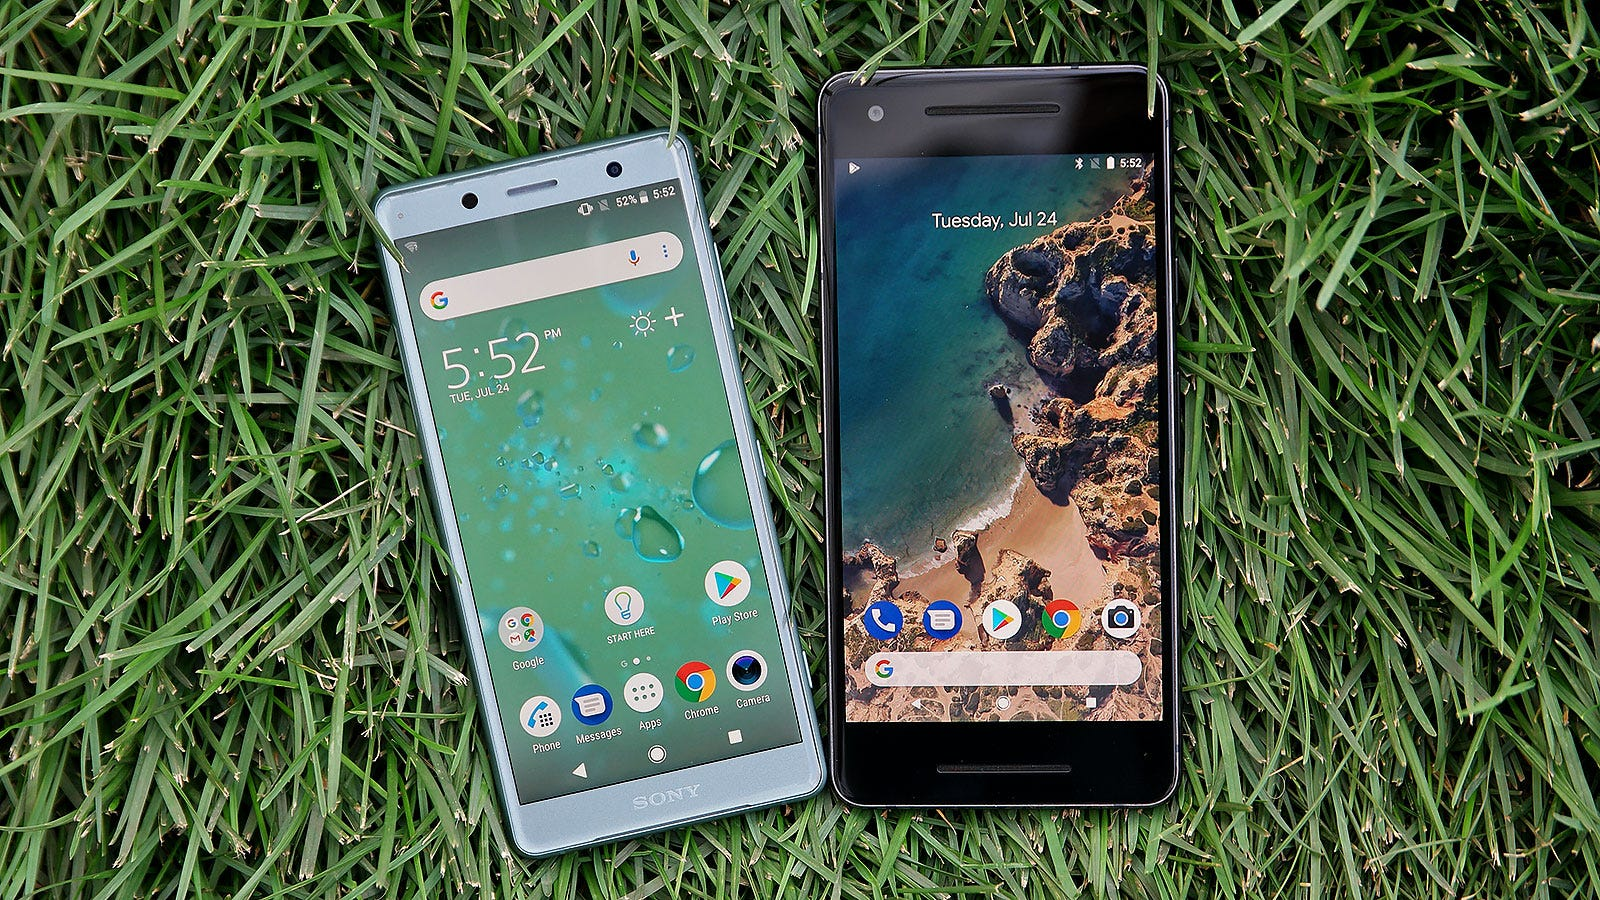 The XZ2 Compact looks small even when compared the Pixel 2. And look at all of the Pixel 2's excess bezels too, yuck.